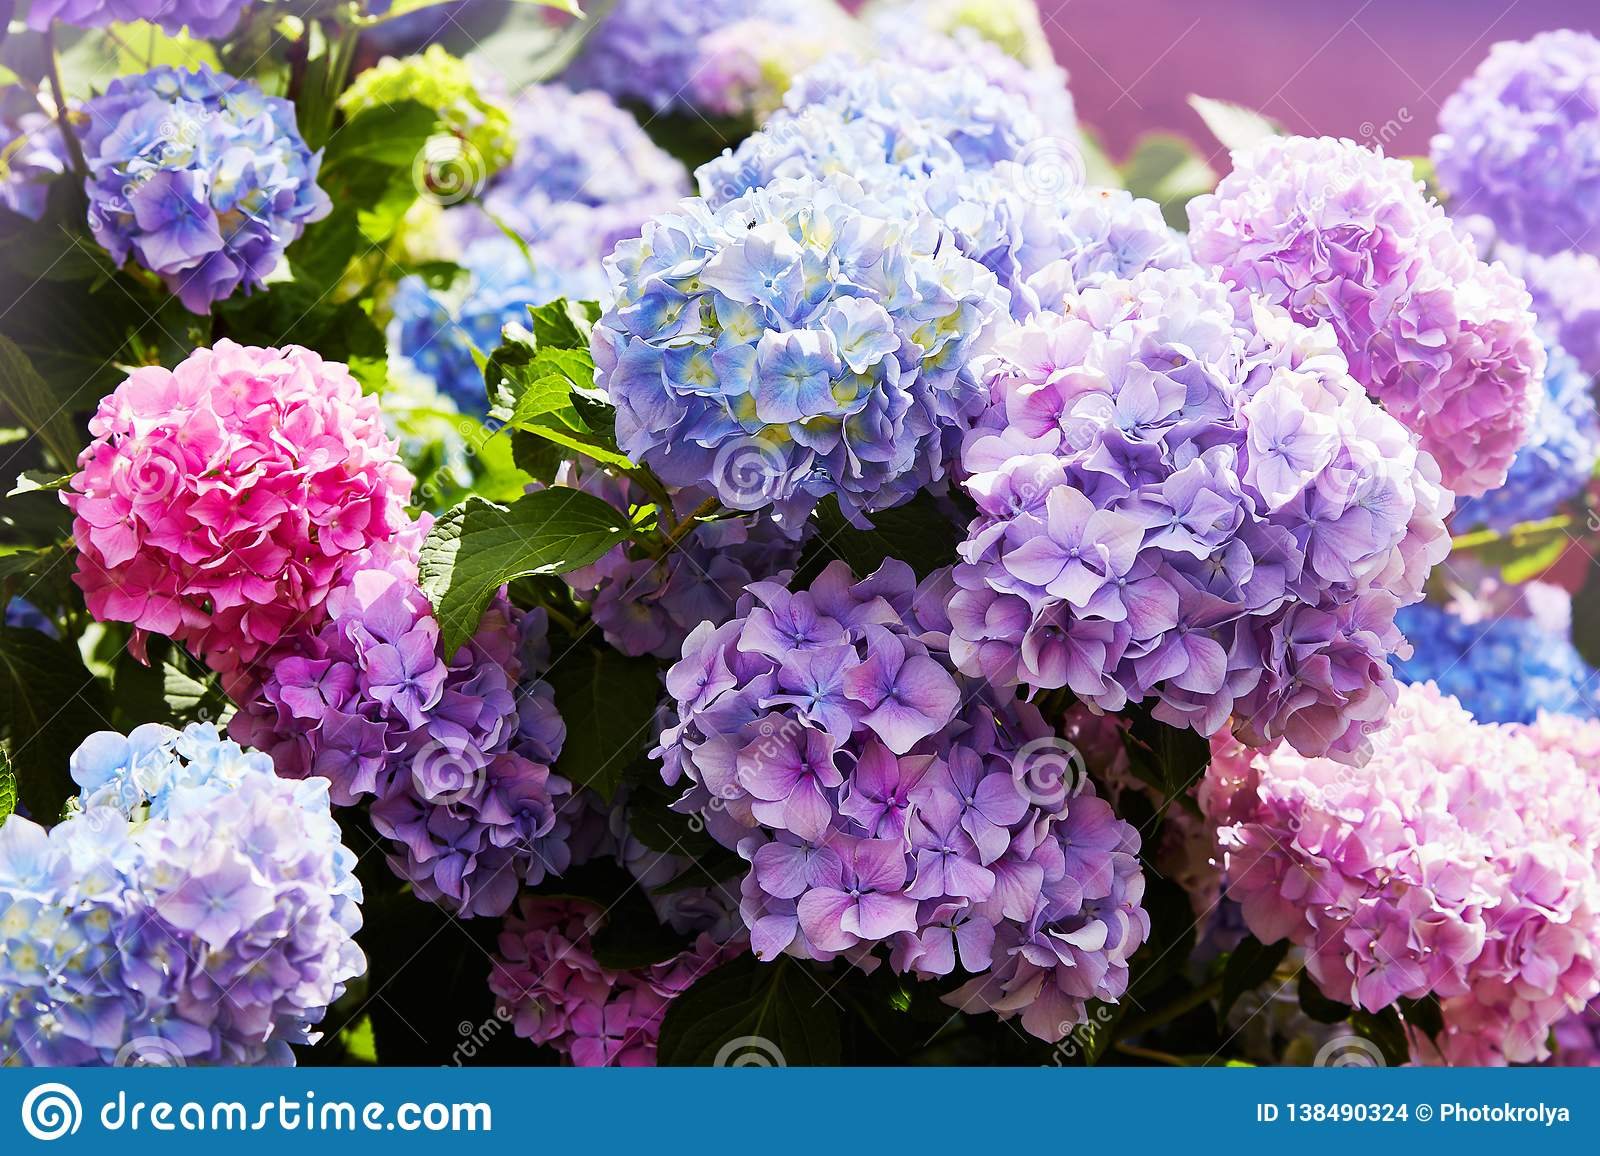 Purple Hydrangea Flower Hydrangea Macrophylla Blooming In Spring And